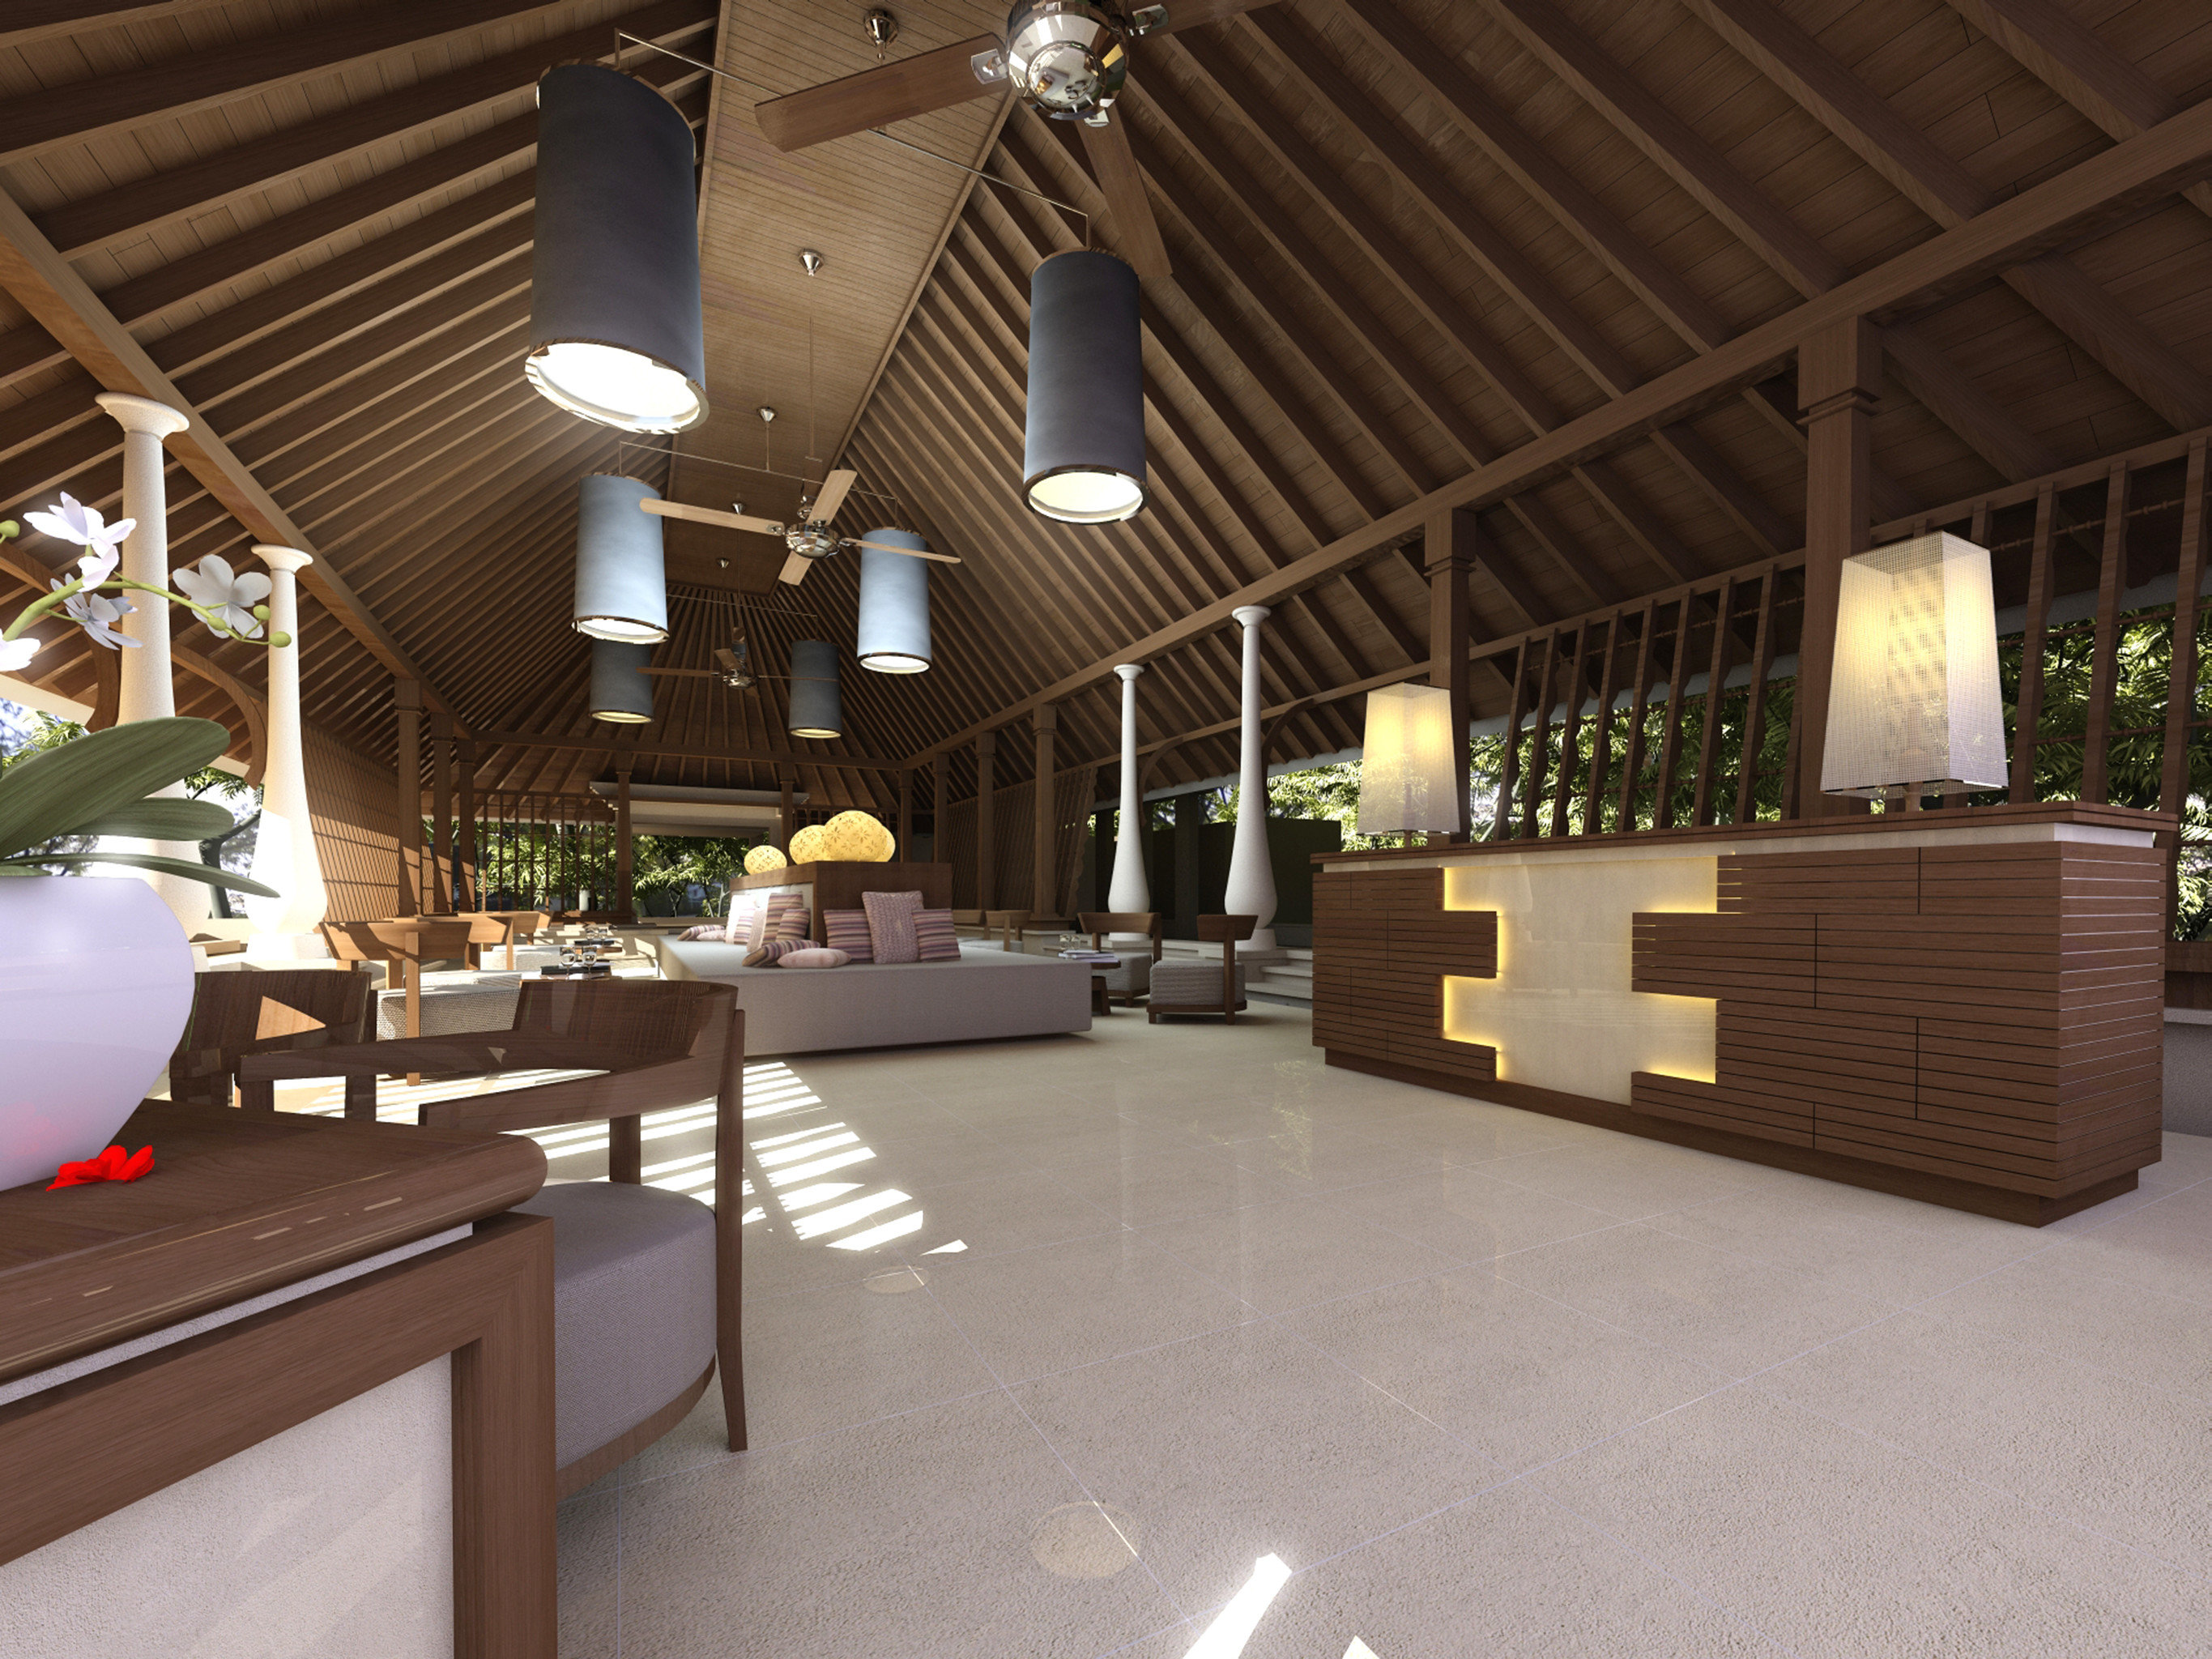 Beachfront Lounge Luxury Modern Scenic views Lobby Architecture outdoor structure